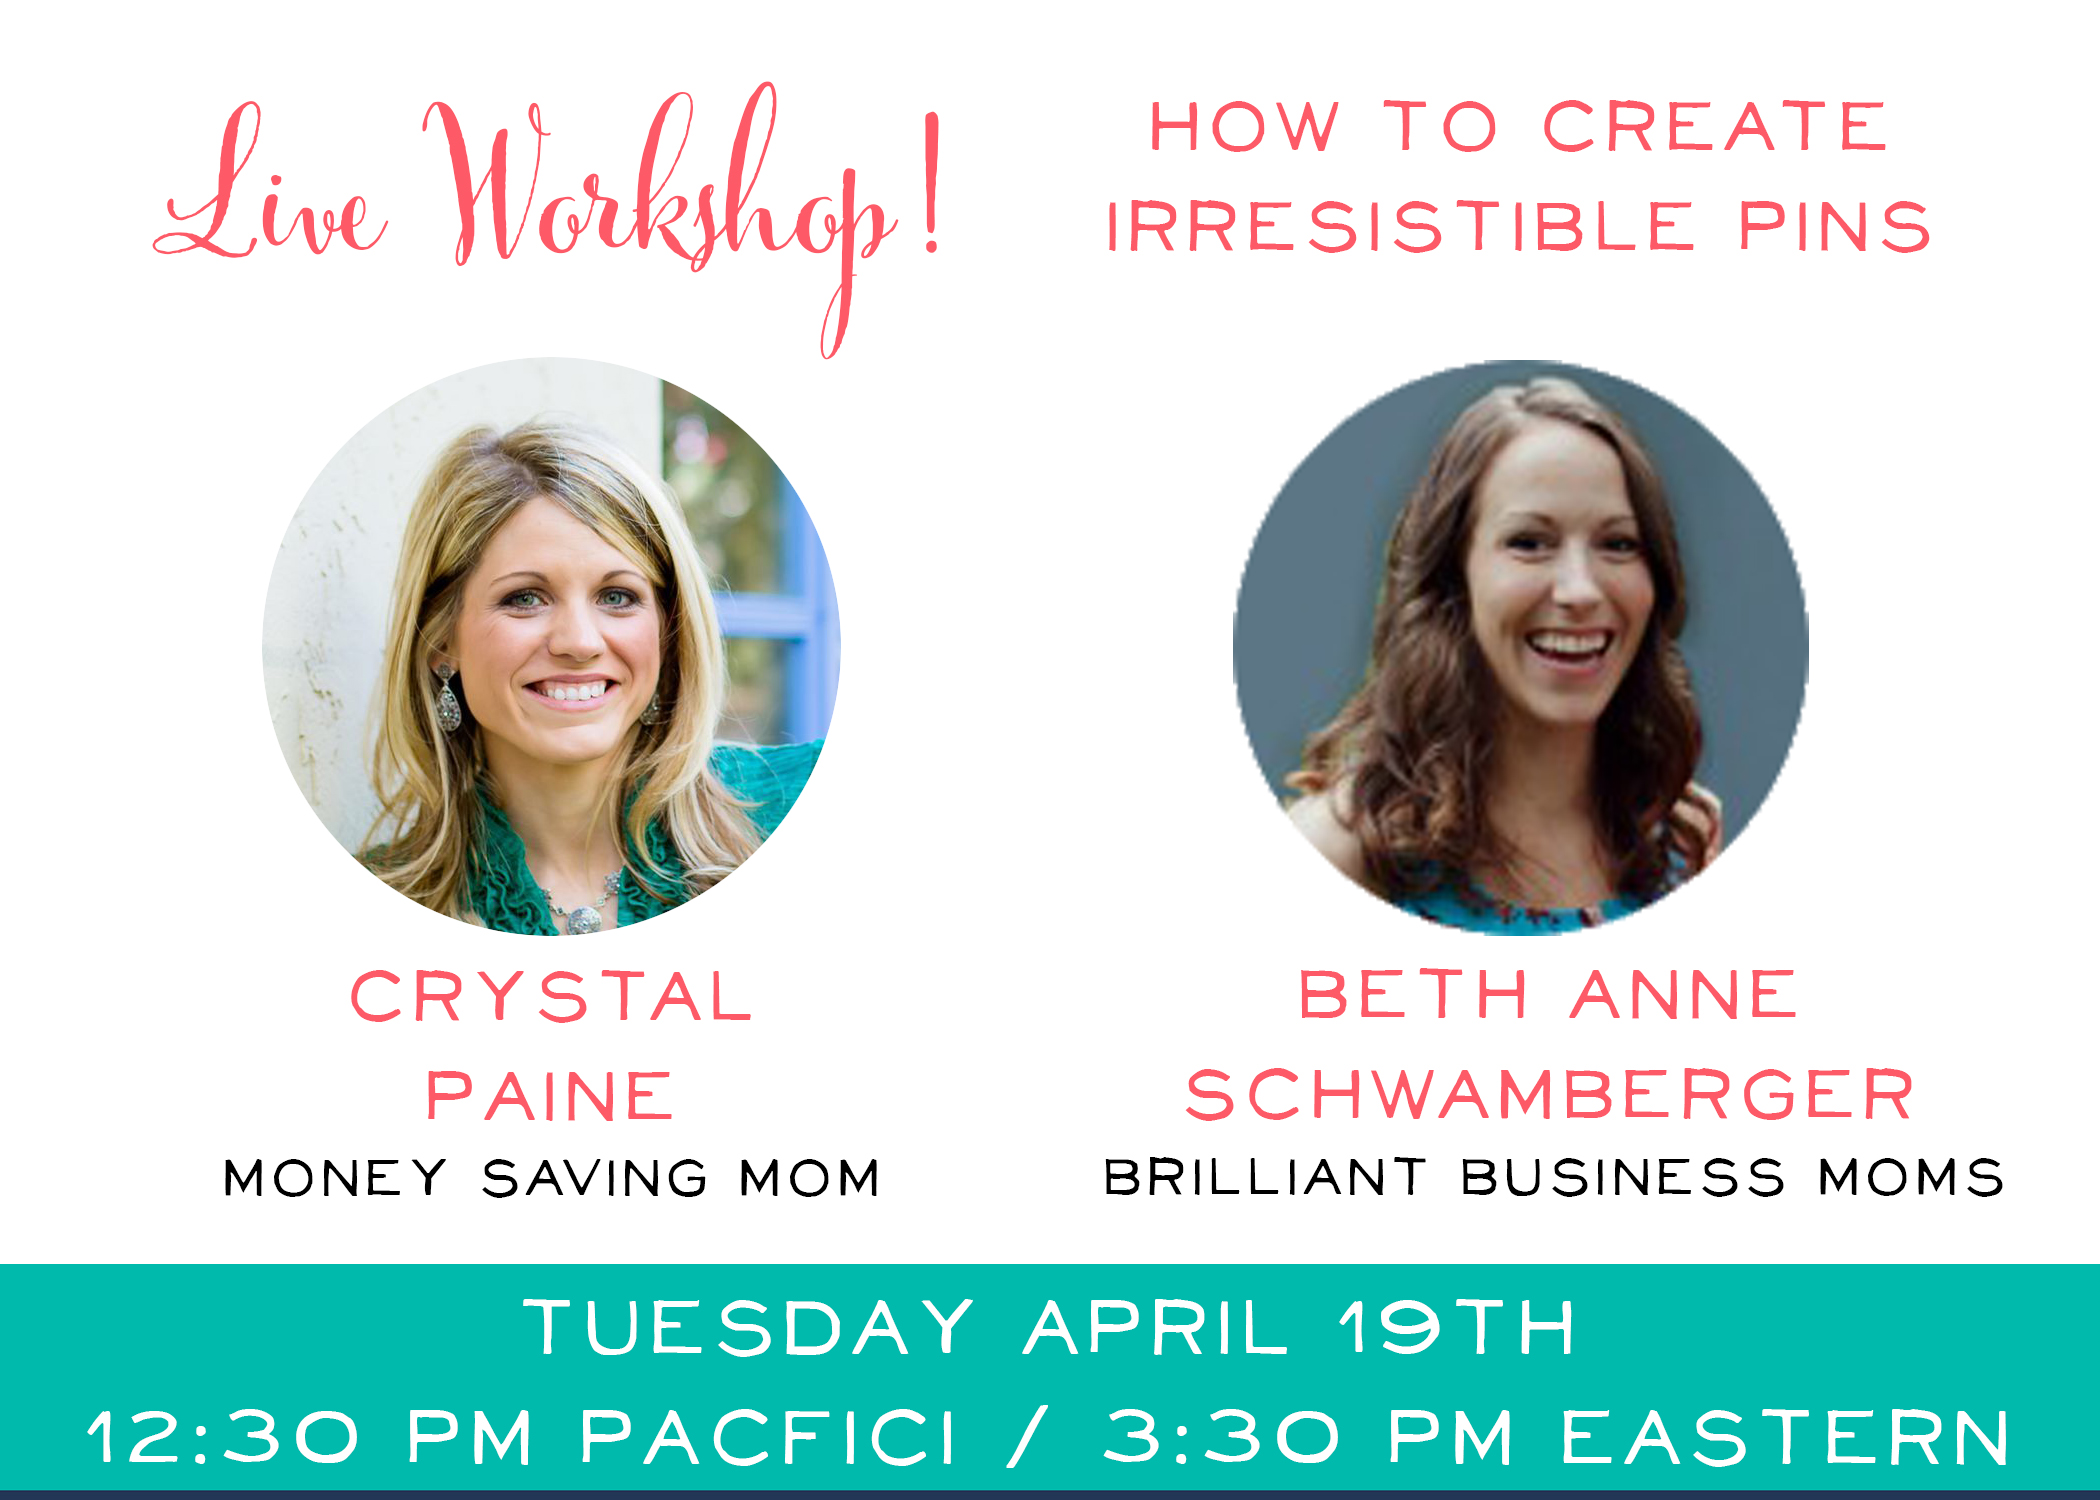 Join us for a FREE webinar on how to create irresistible